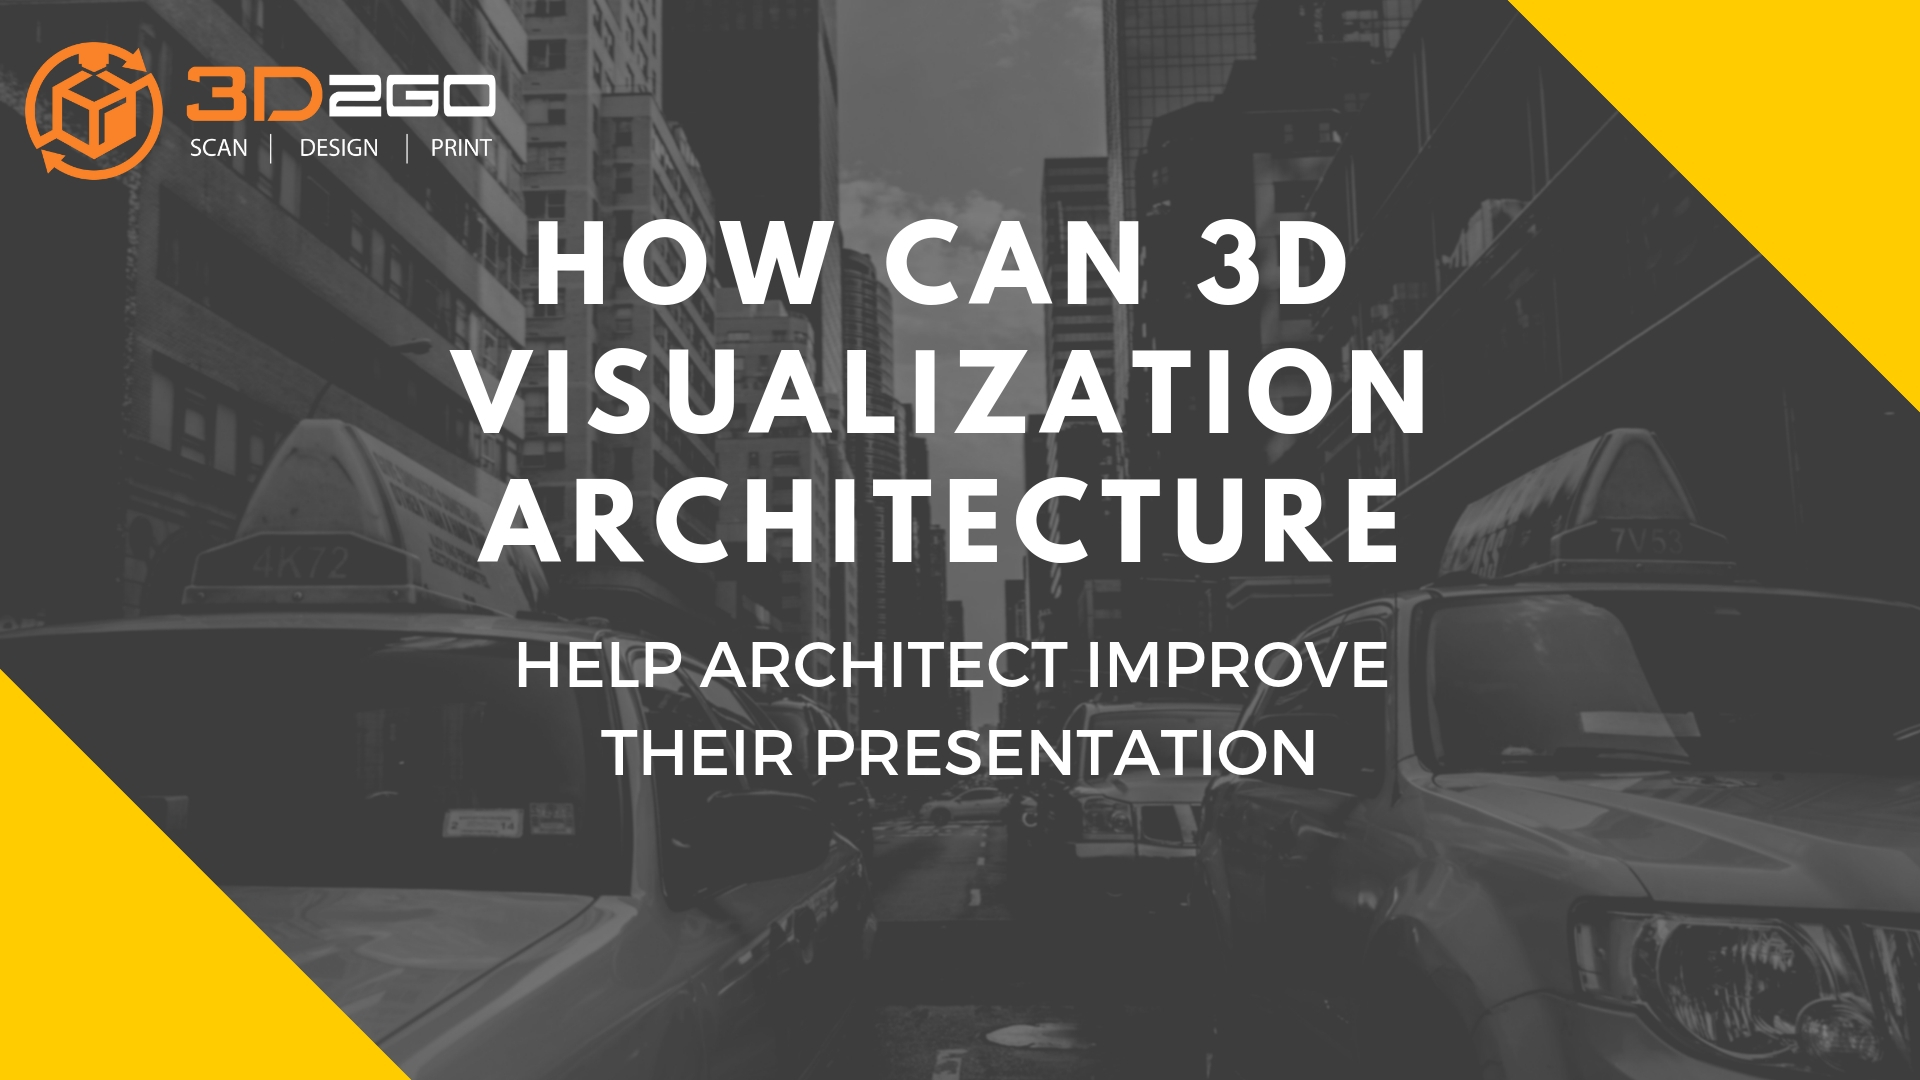 3D Visualization Architecture